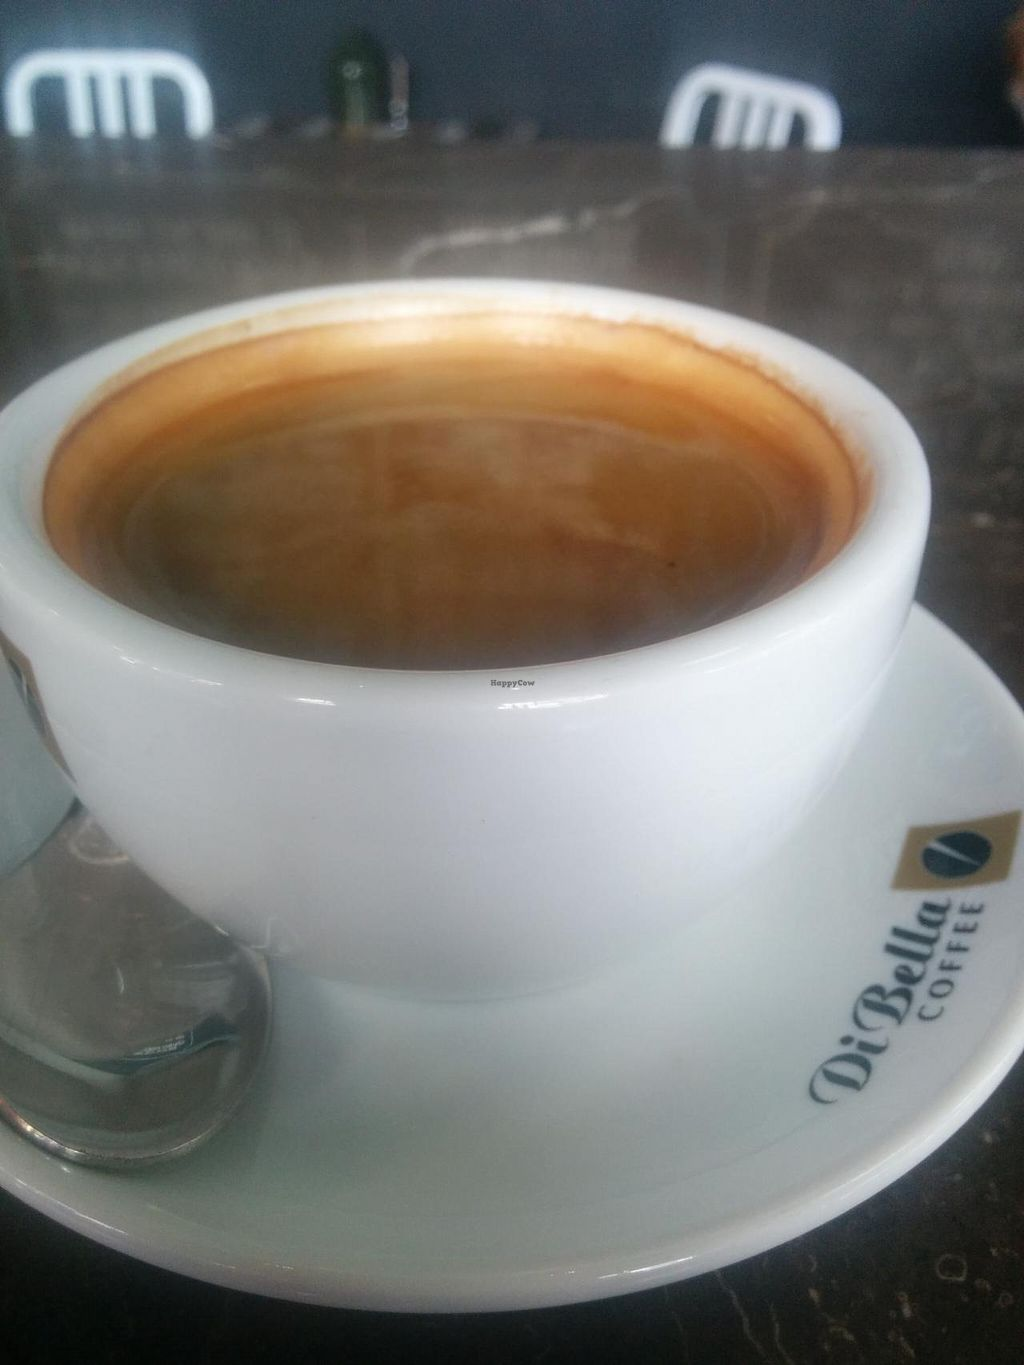 """Photo of Felici Espresso Bar  by <a href=""""/members/profile/VeganSoapDude"""">VeganSoapDude</a> <br/>great coffee  <br/> February 2, 2015  - <a href='/contact/abuse/image/50018/92082'>Report</a>"""